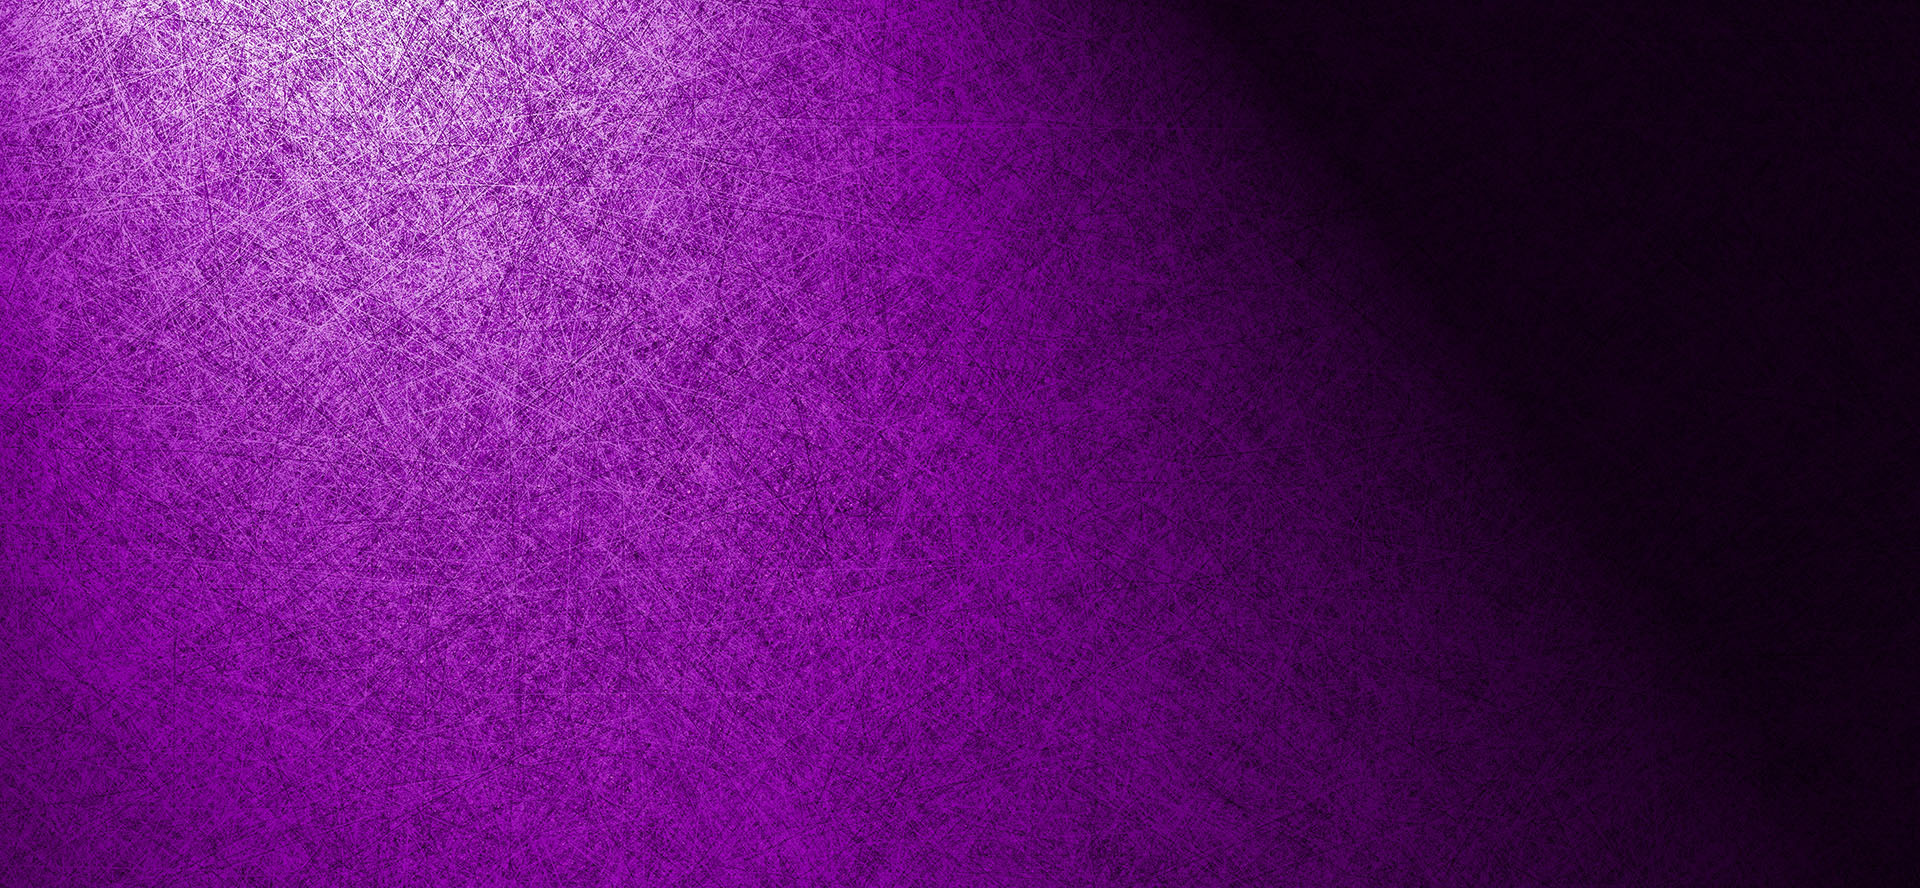 Purple Textured Background Purple Textured Silk